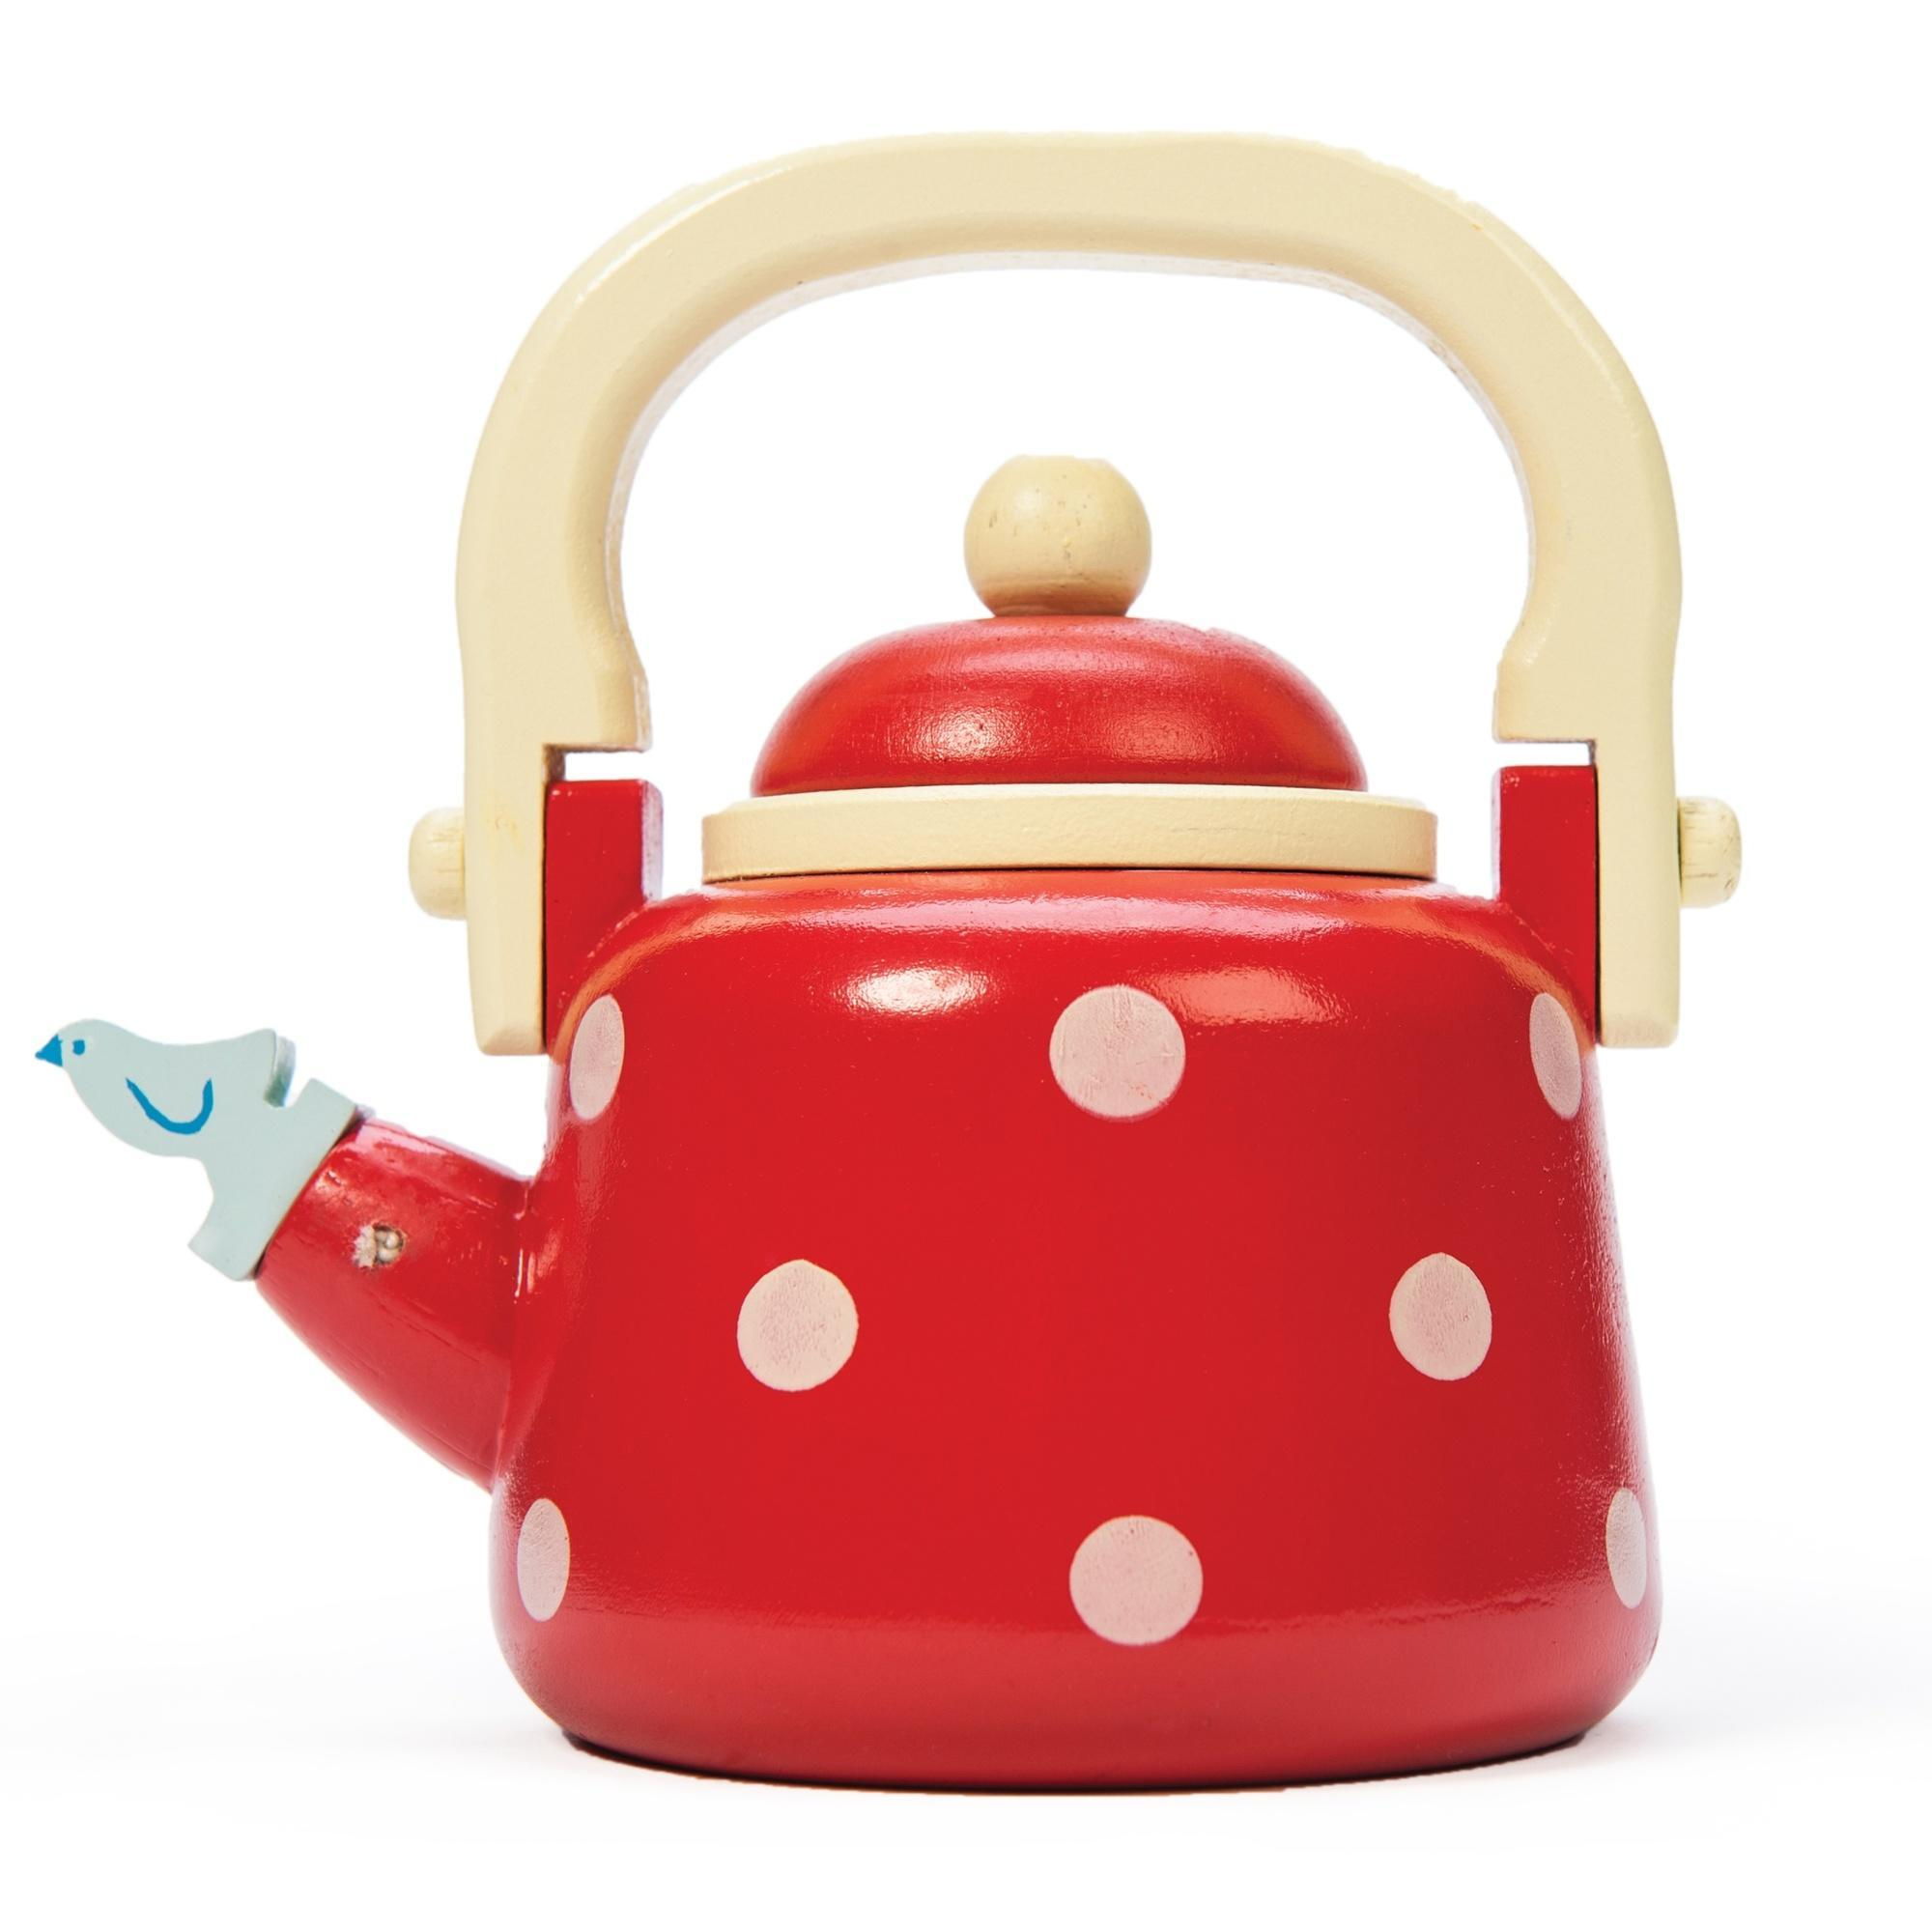 Le Toy Van Dotty Kettle Le Toy Van Pretend Play at Little Earth Nest Eco Shop